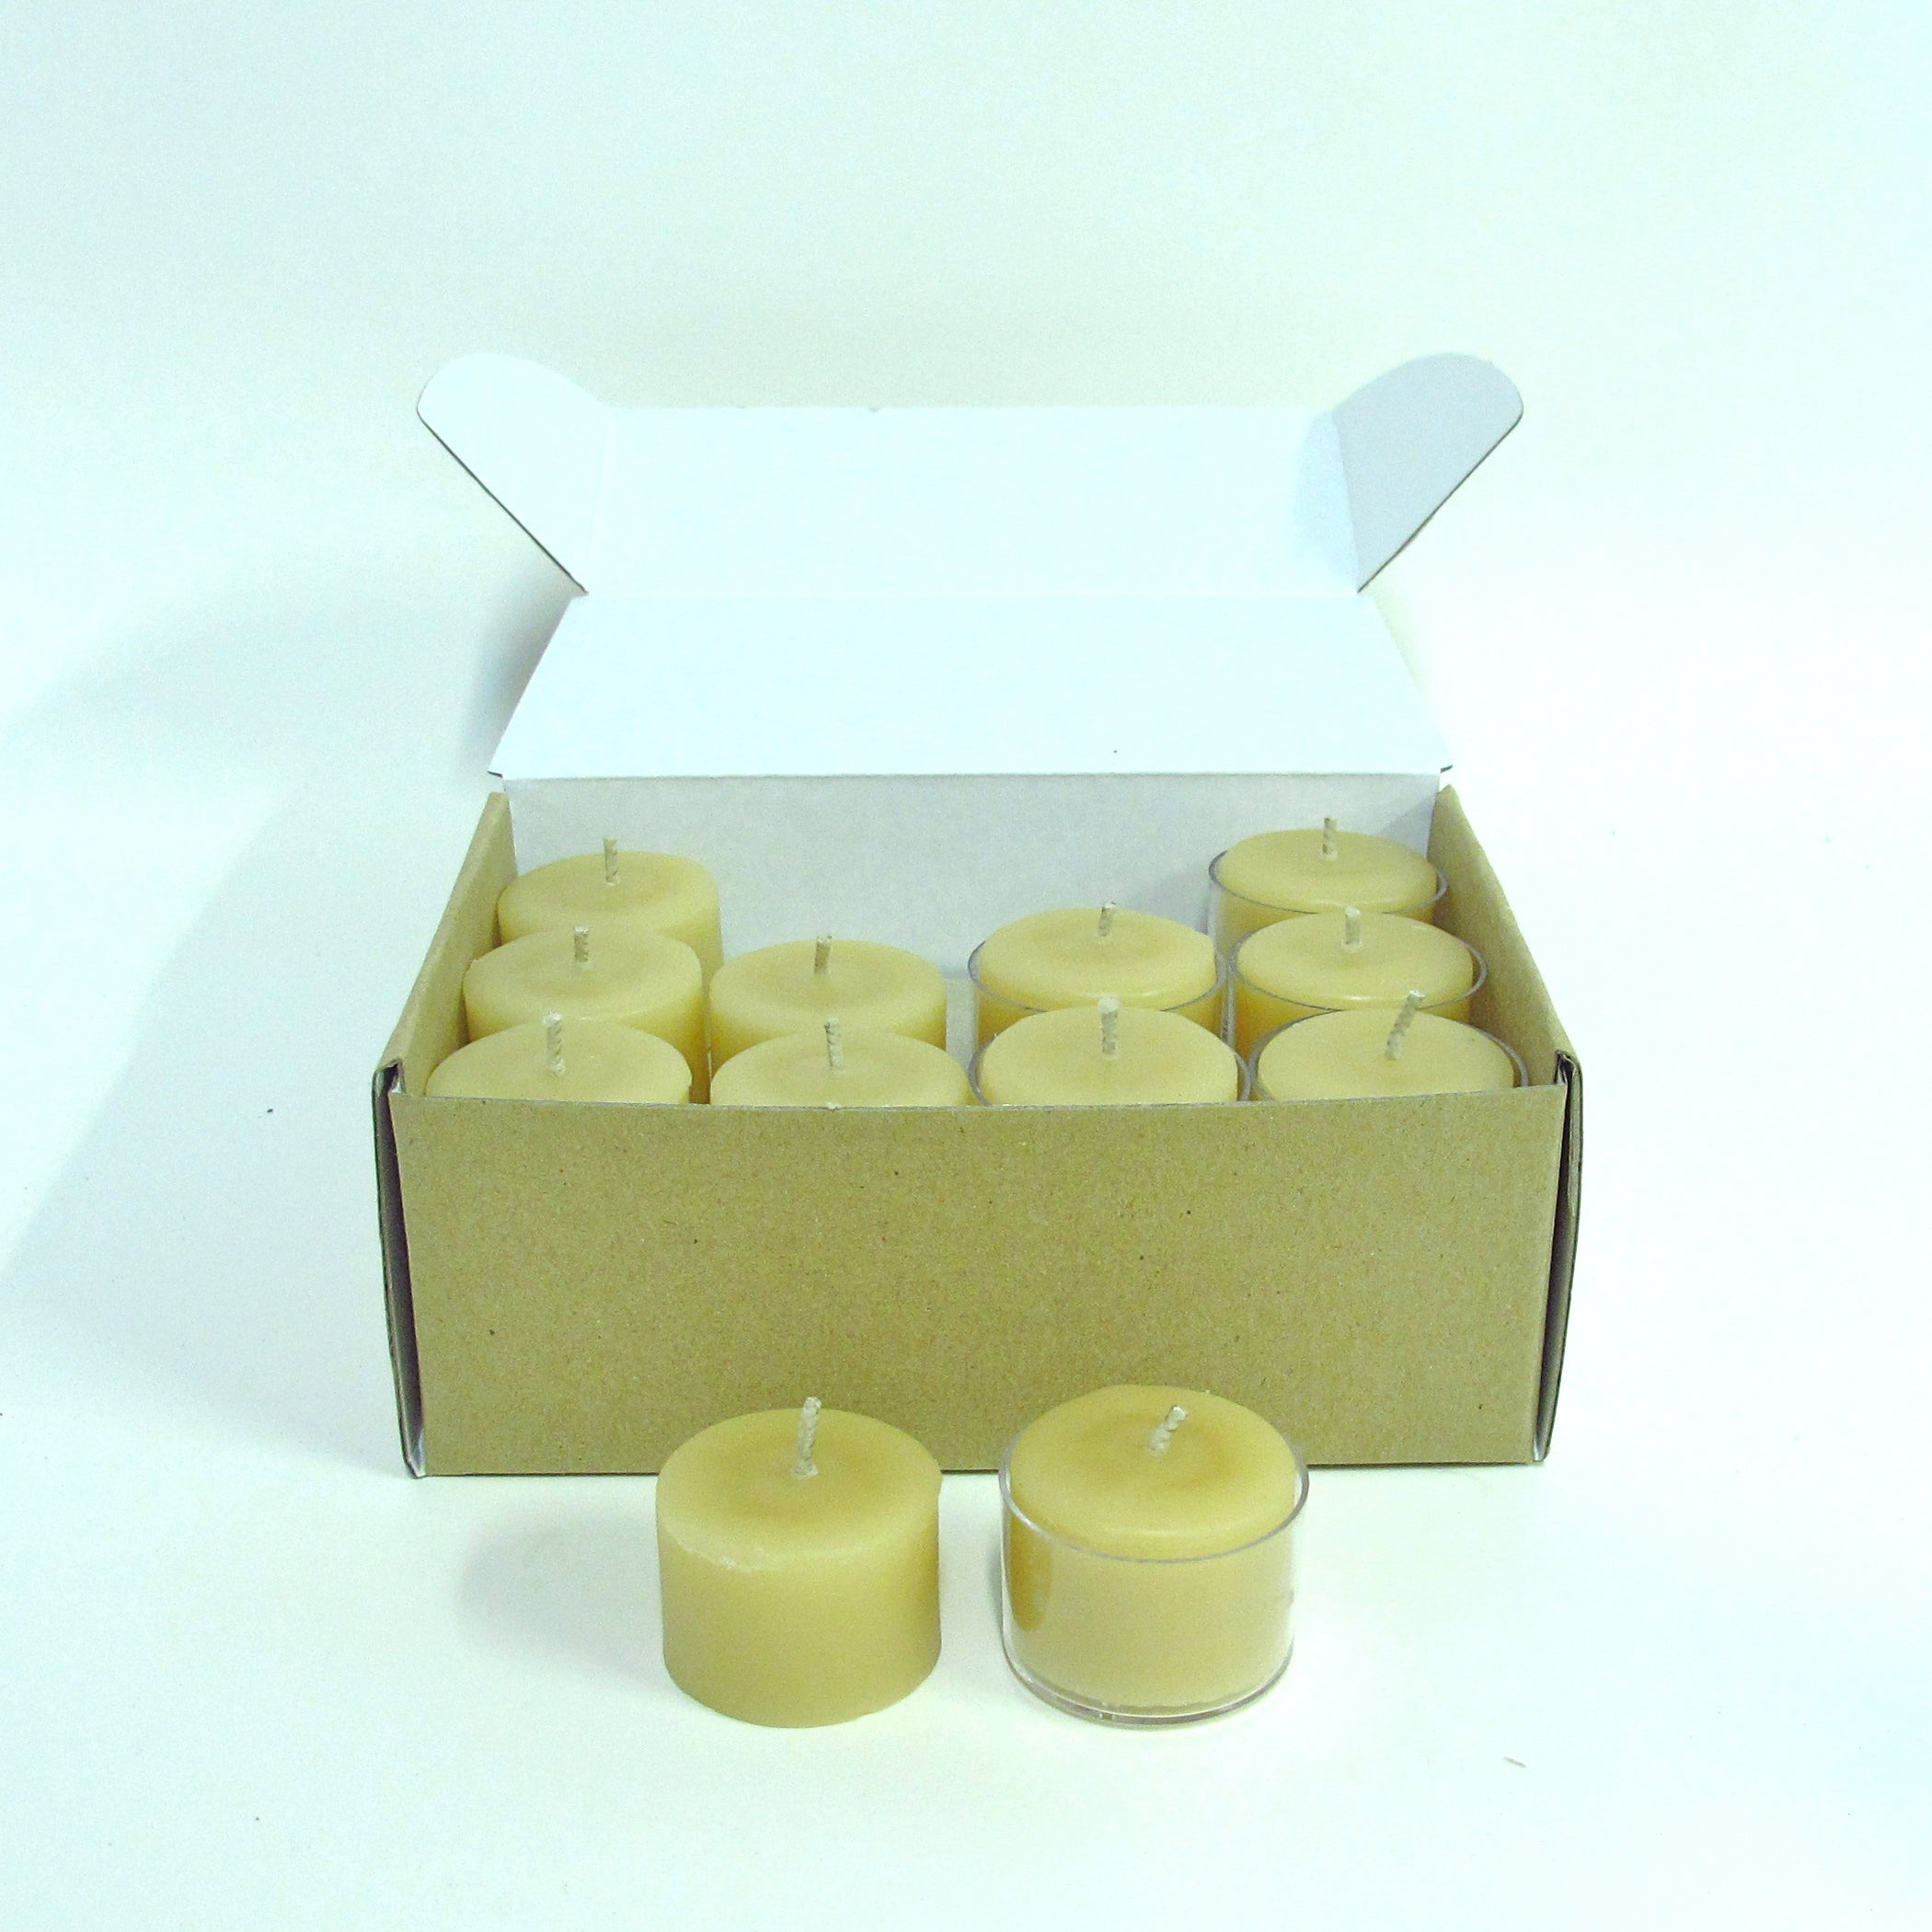 Box of 24 x 8-9 hour beeswax tealight candles with 6 clear reusable cups